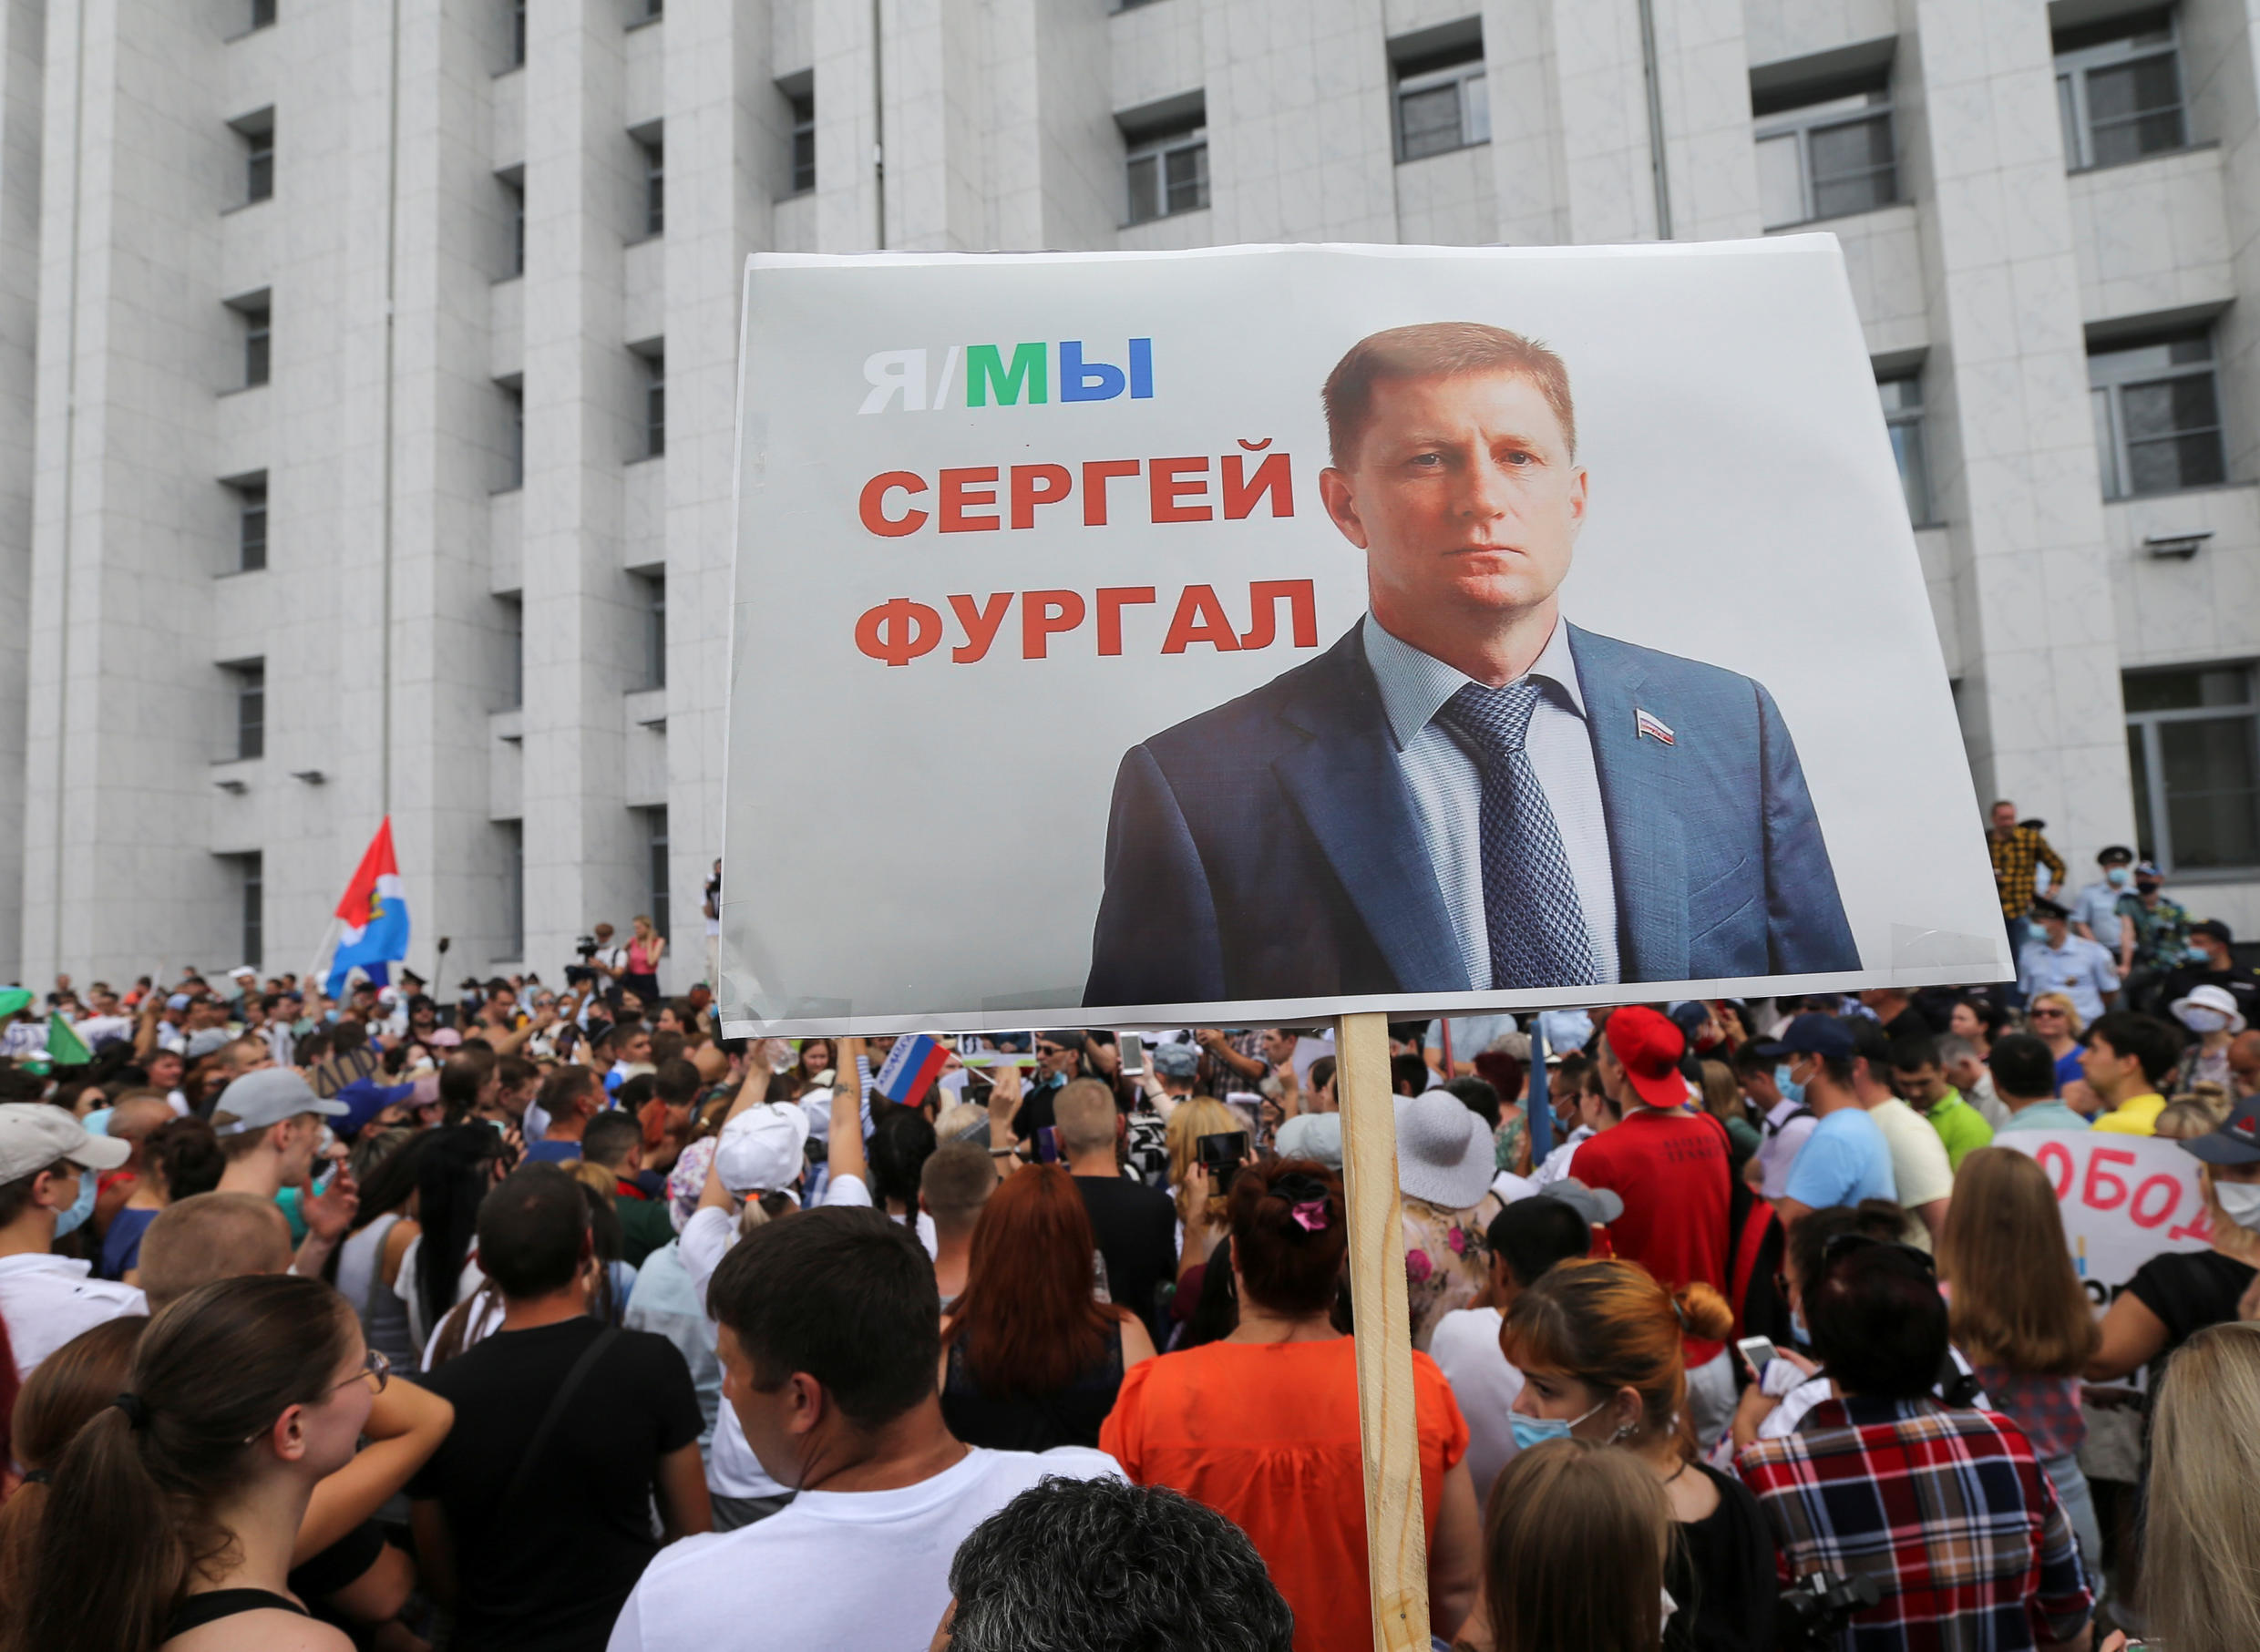 2020-07-25T083323Z_893676878_RC280I9A10KY_RTRMADP_3_RUSSIA-POLITICS-GOVERNOR